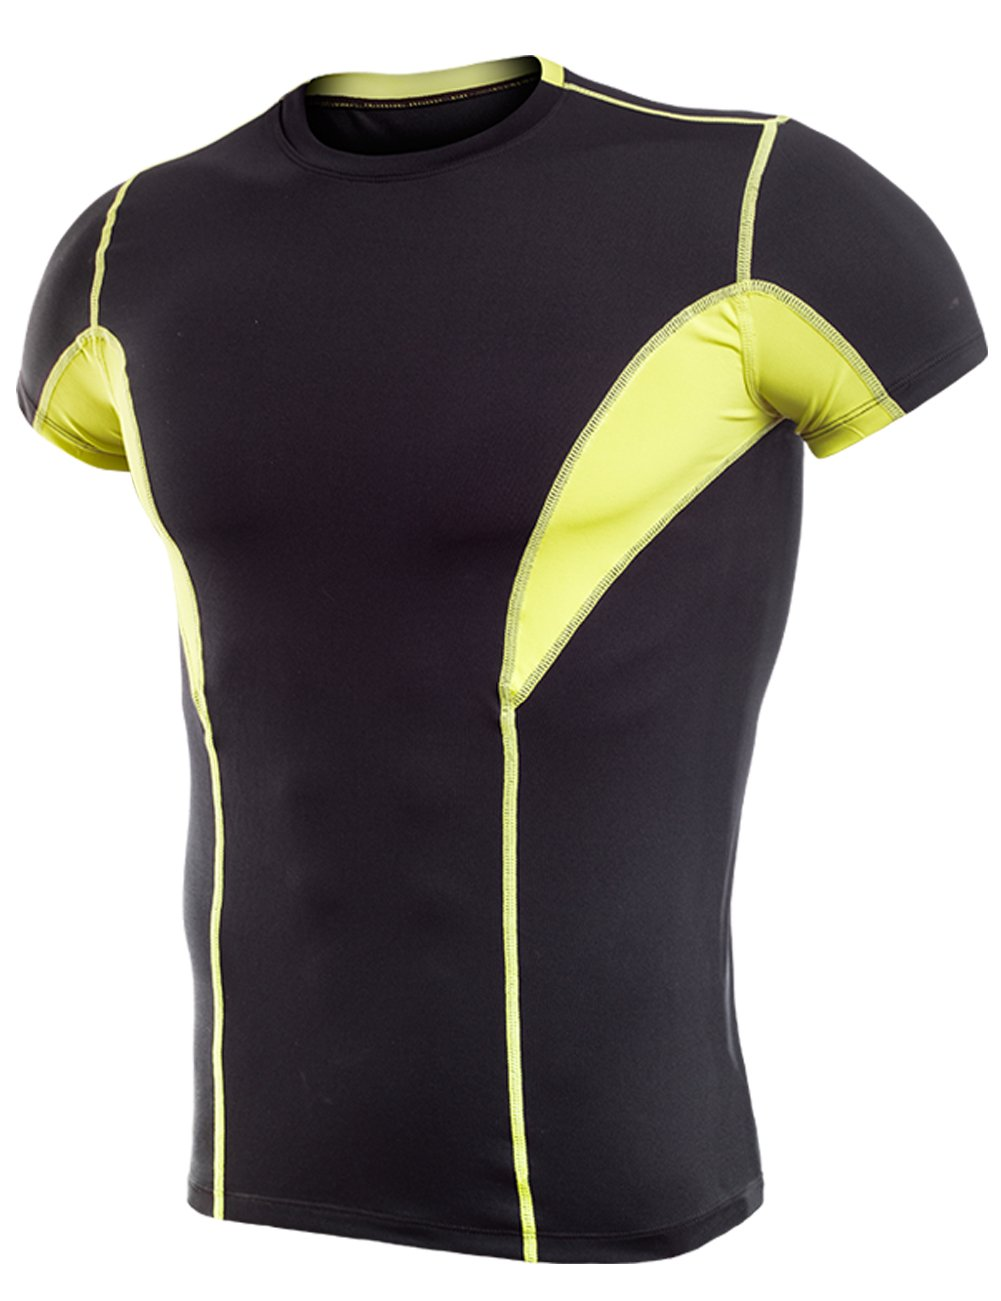 Lavento Men's Cool Dry Compression Shirts Short-Sleeve Workout T-Shirts (1 Pack-17105 Black/Yellow,Medium)